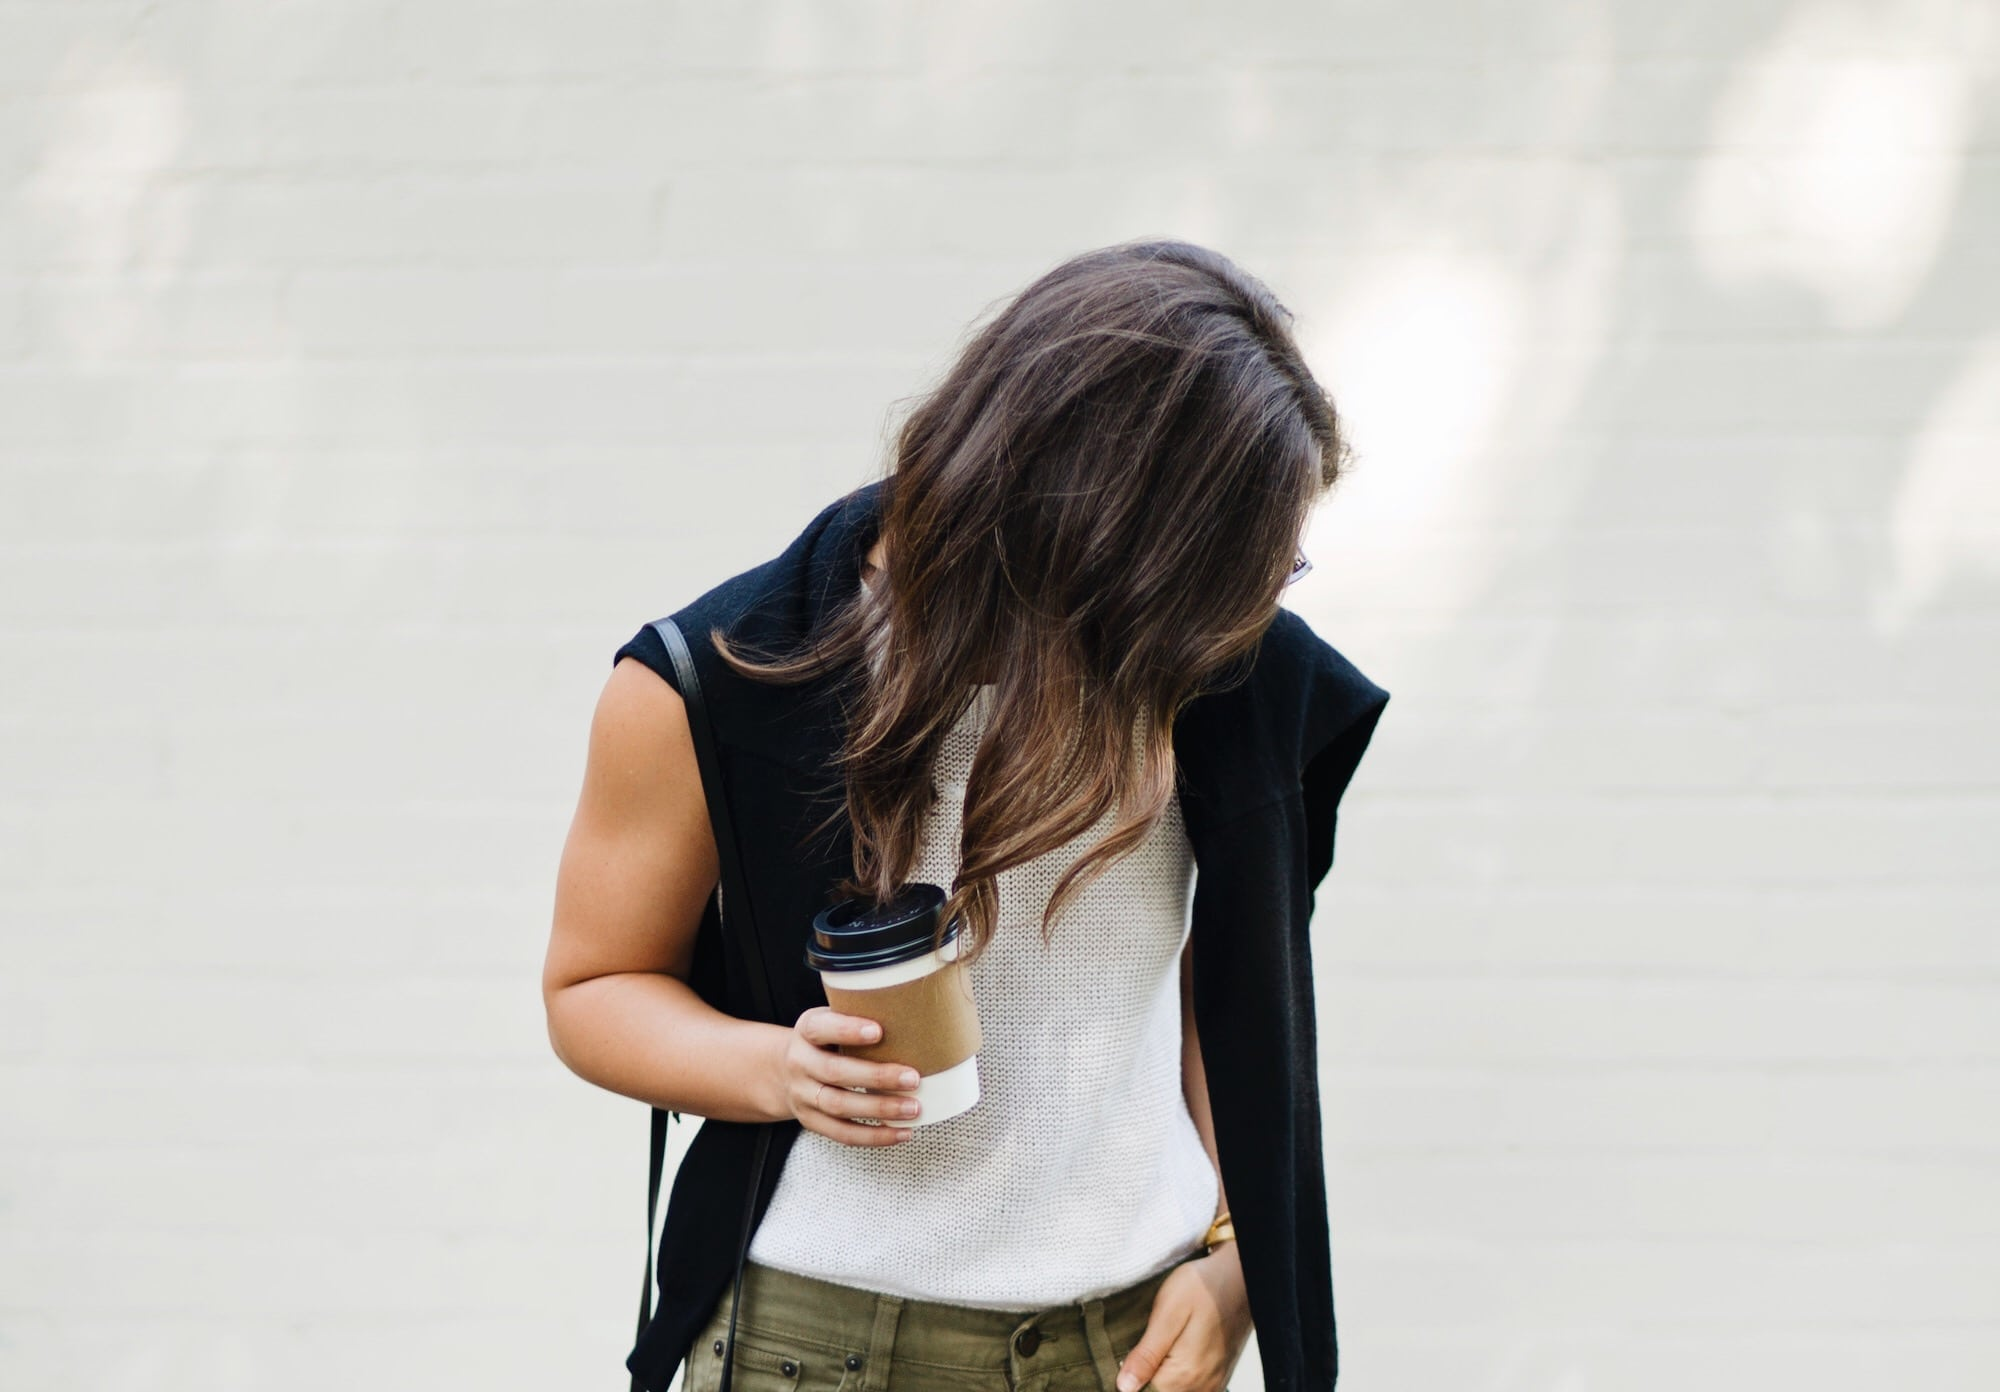 White Sleeveless Sweater on A Dash of Details